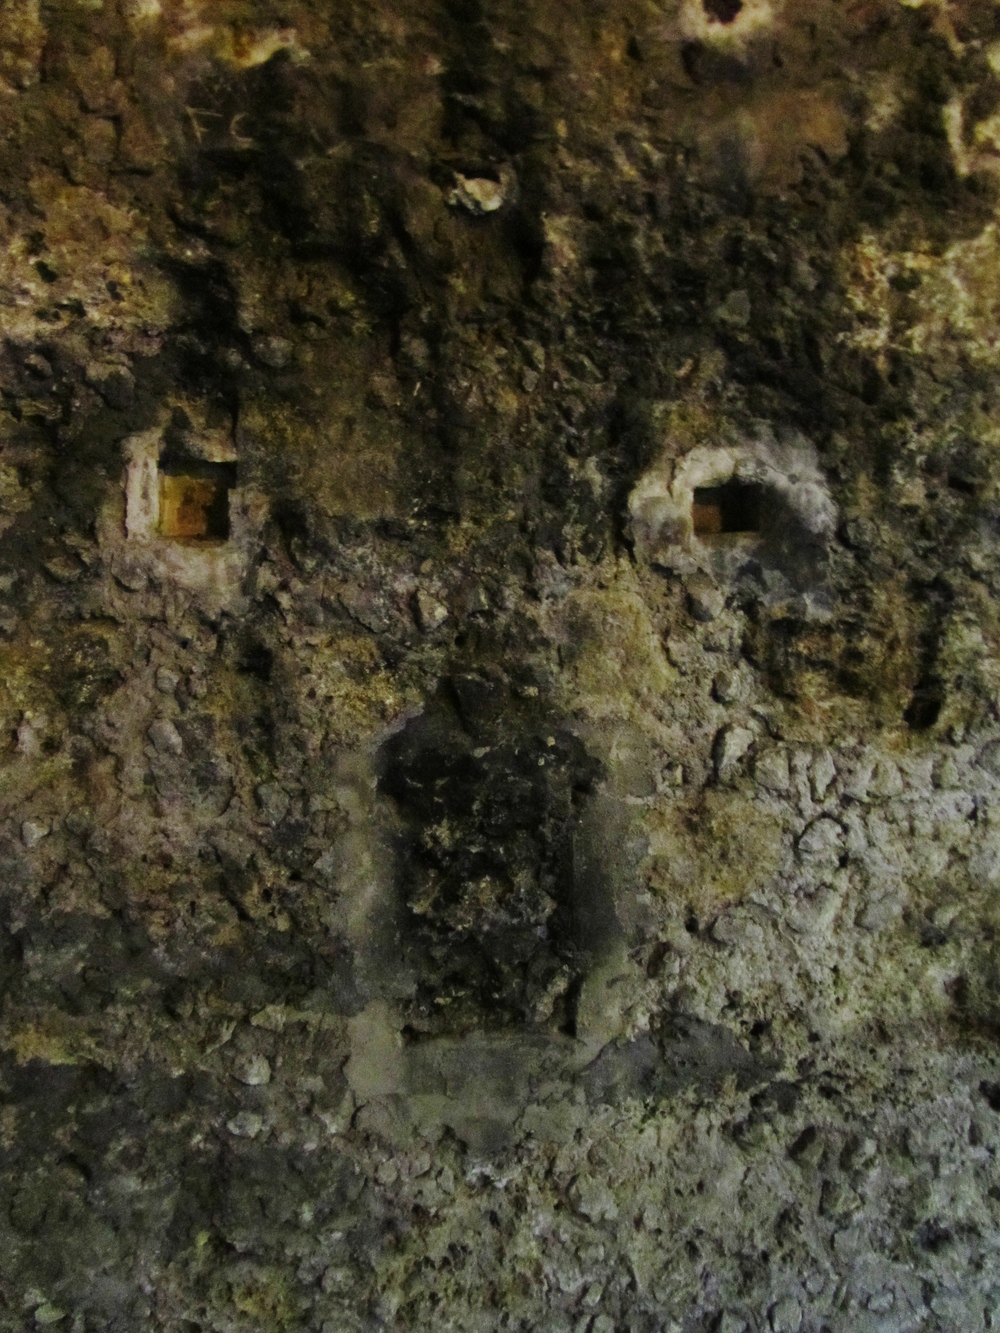 spooky rock face paris catacombs.JPG